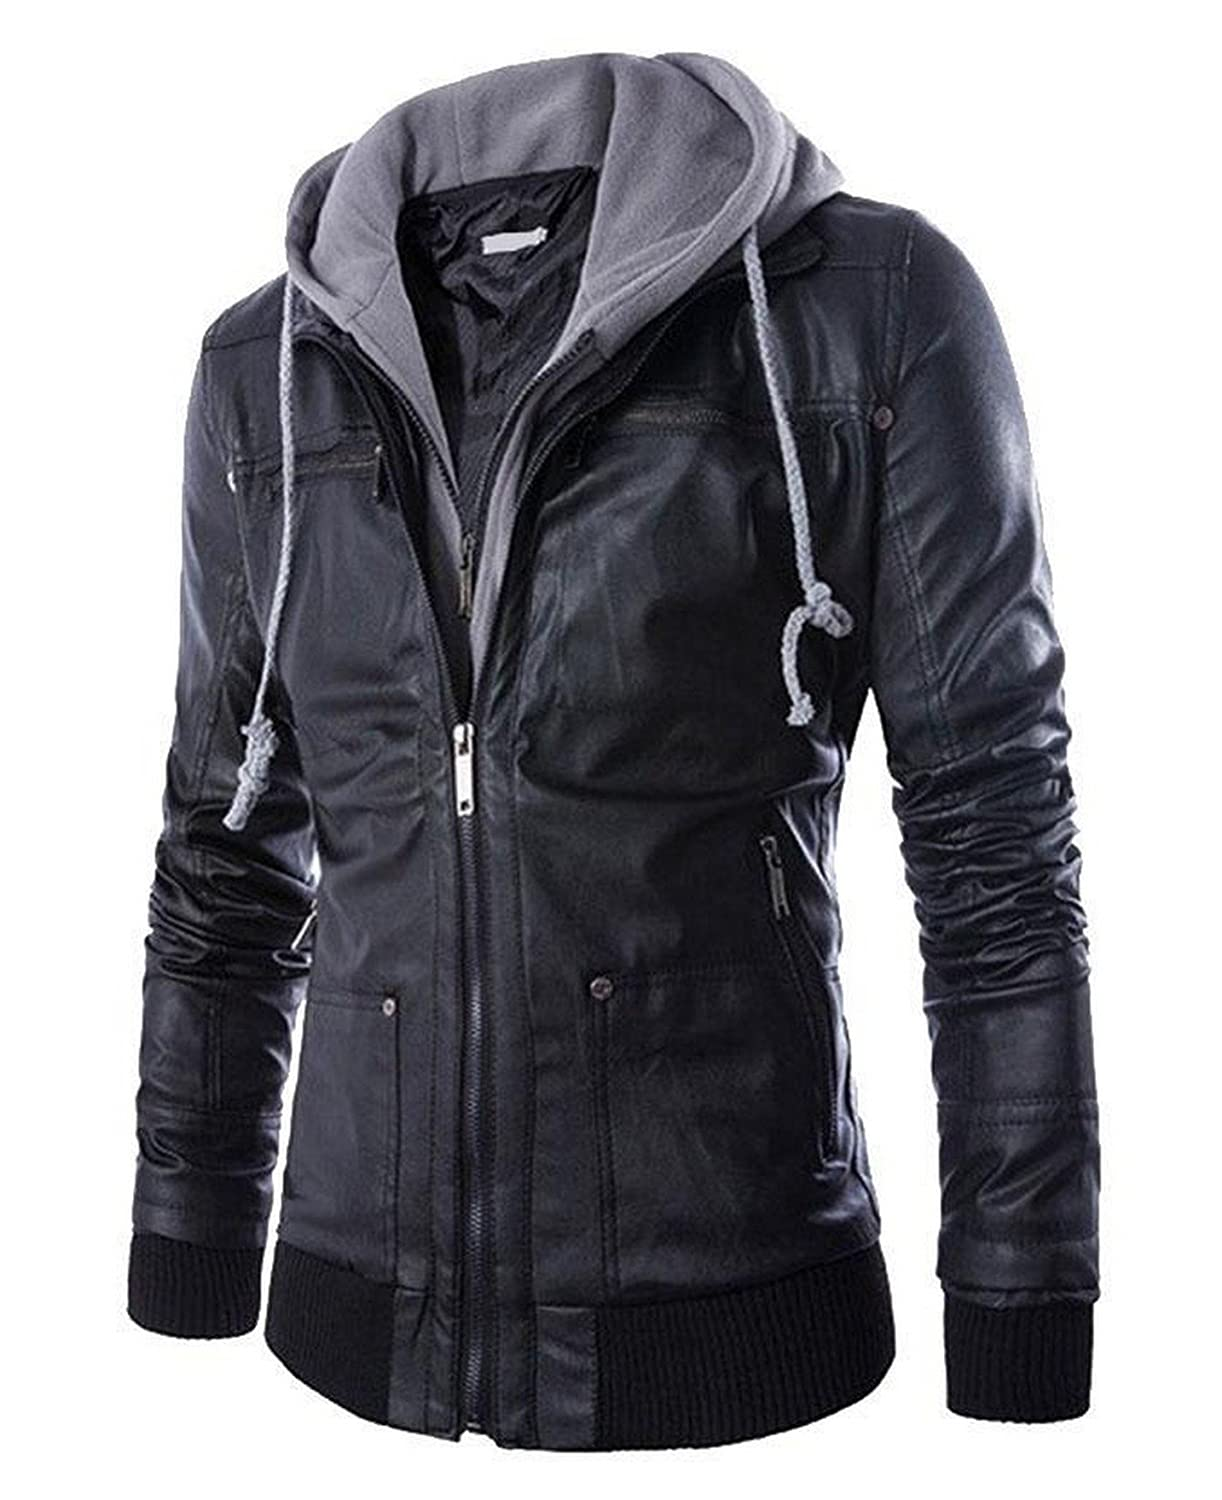 Pomo-Z Men's Faux Leather Hooded Biker Jacket